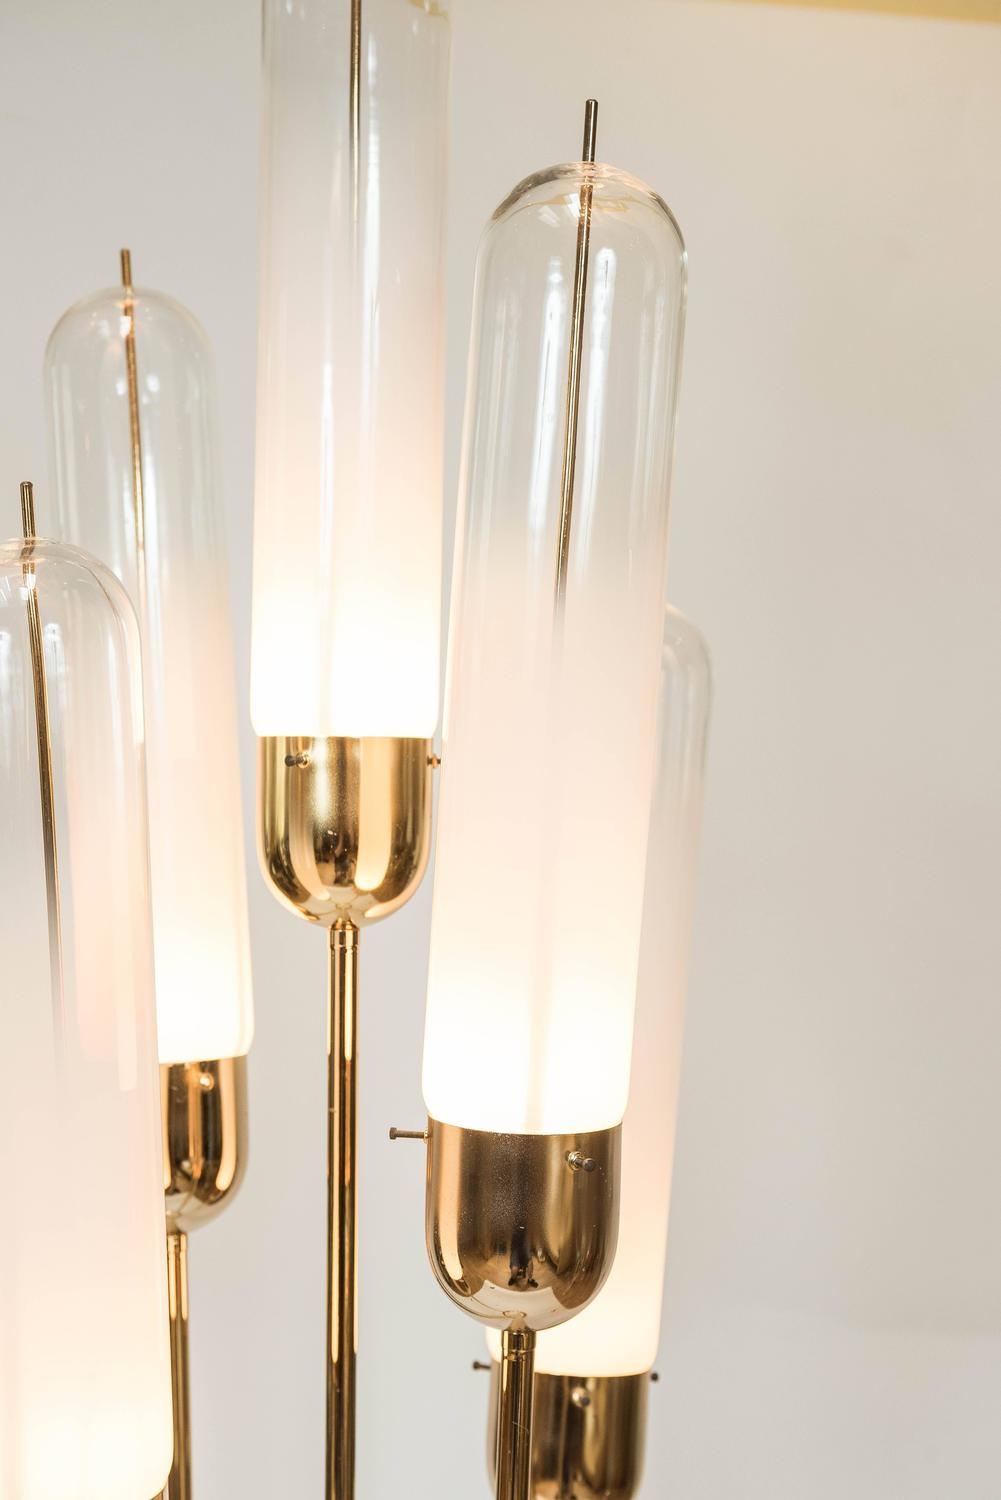 Murano Glass Floor Lamp Attributed To Vistosi Circa 1979 At 1stdibs